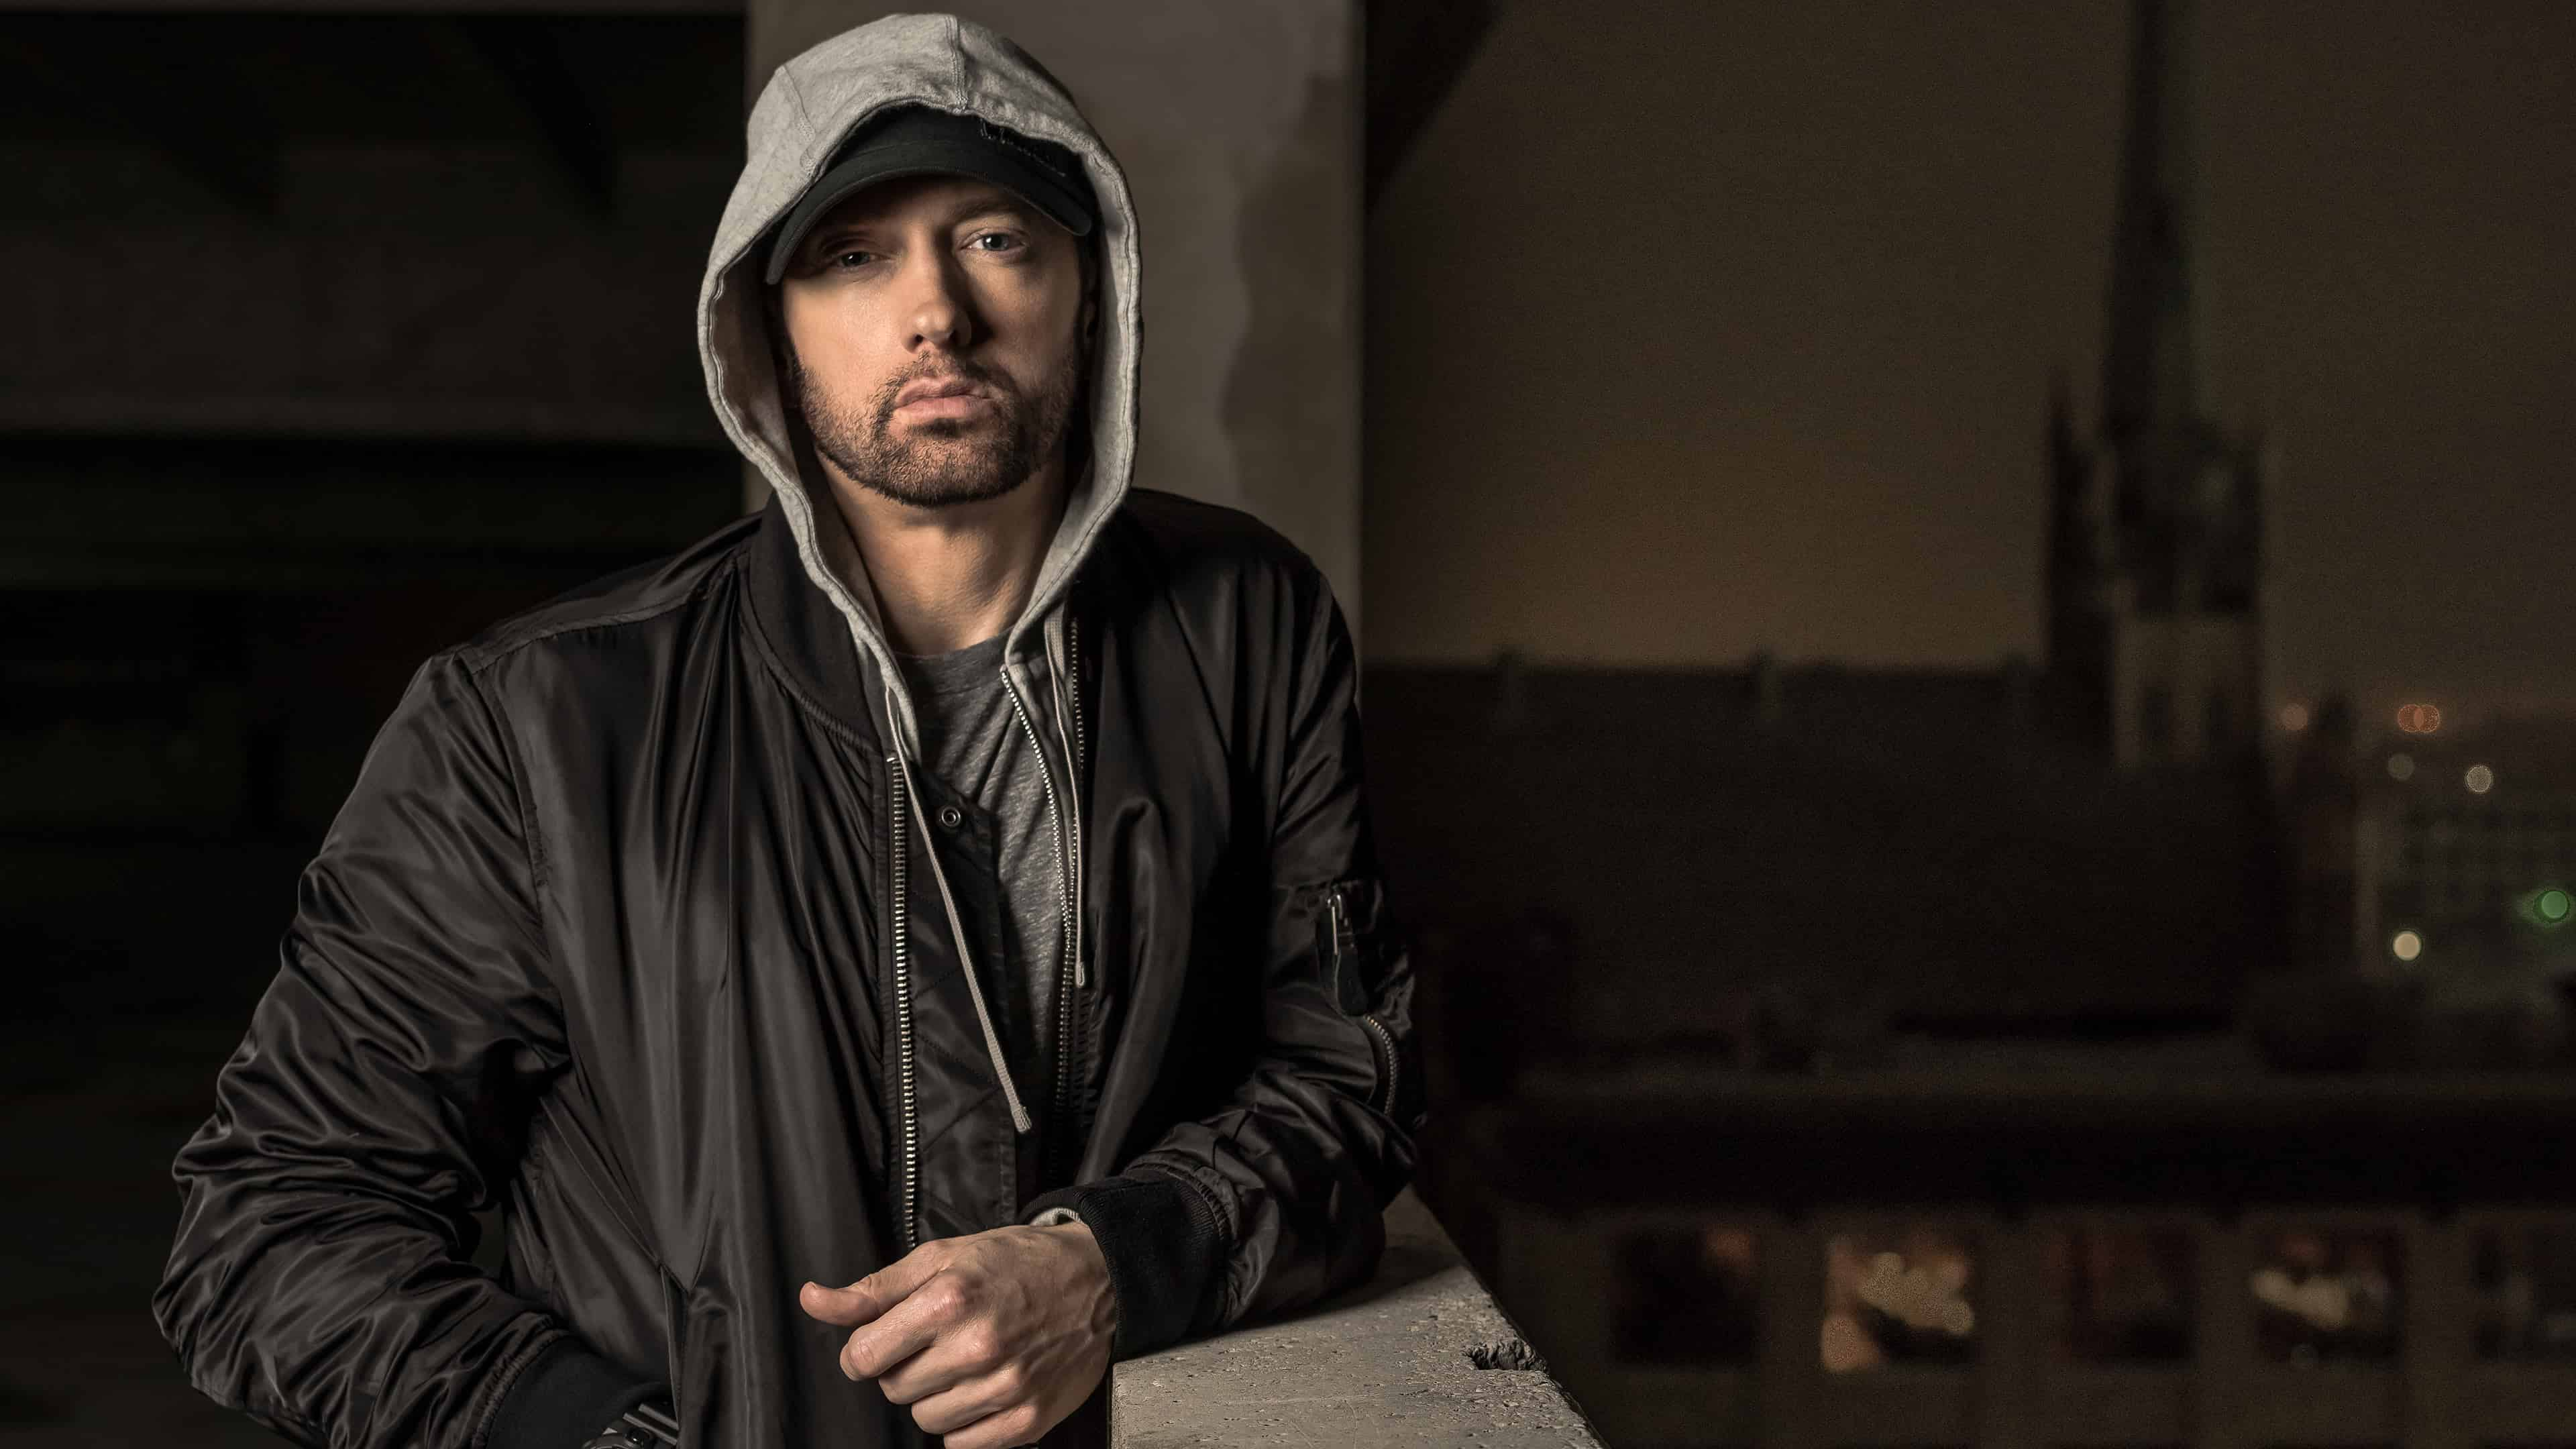 2019 year lifestyle- Wallpaper Eminem pictures